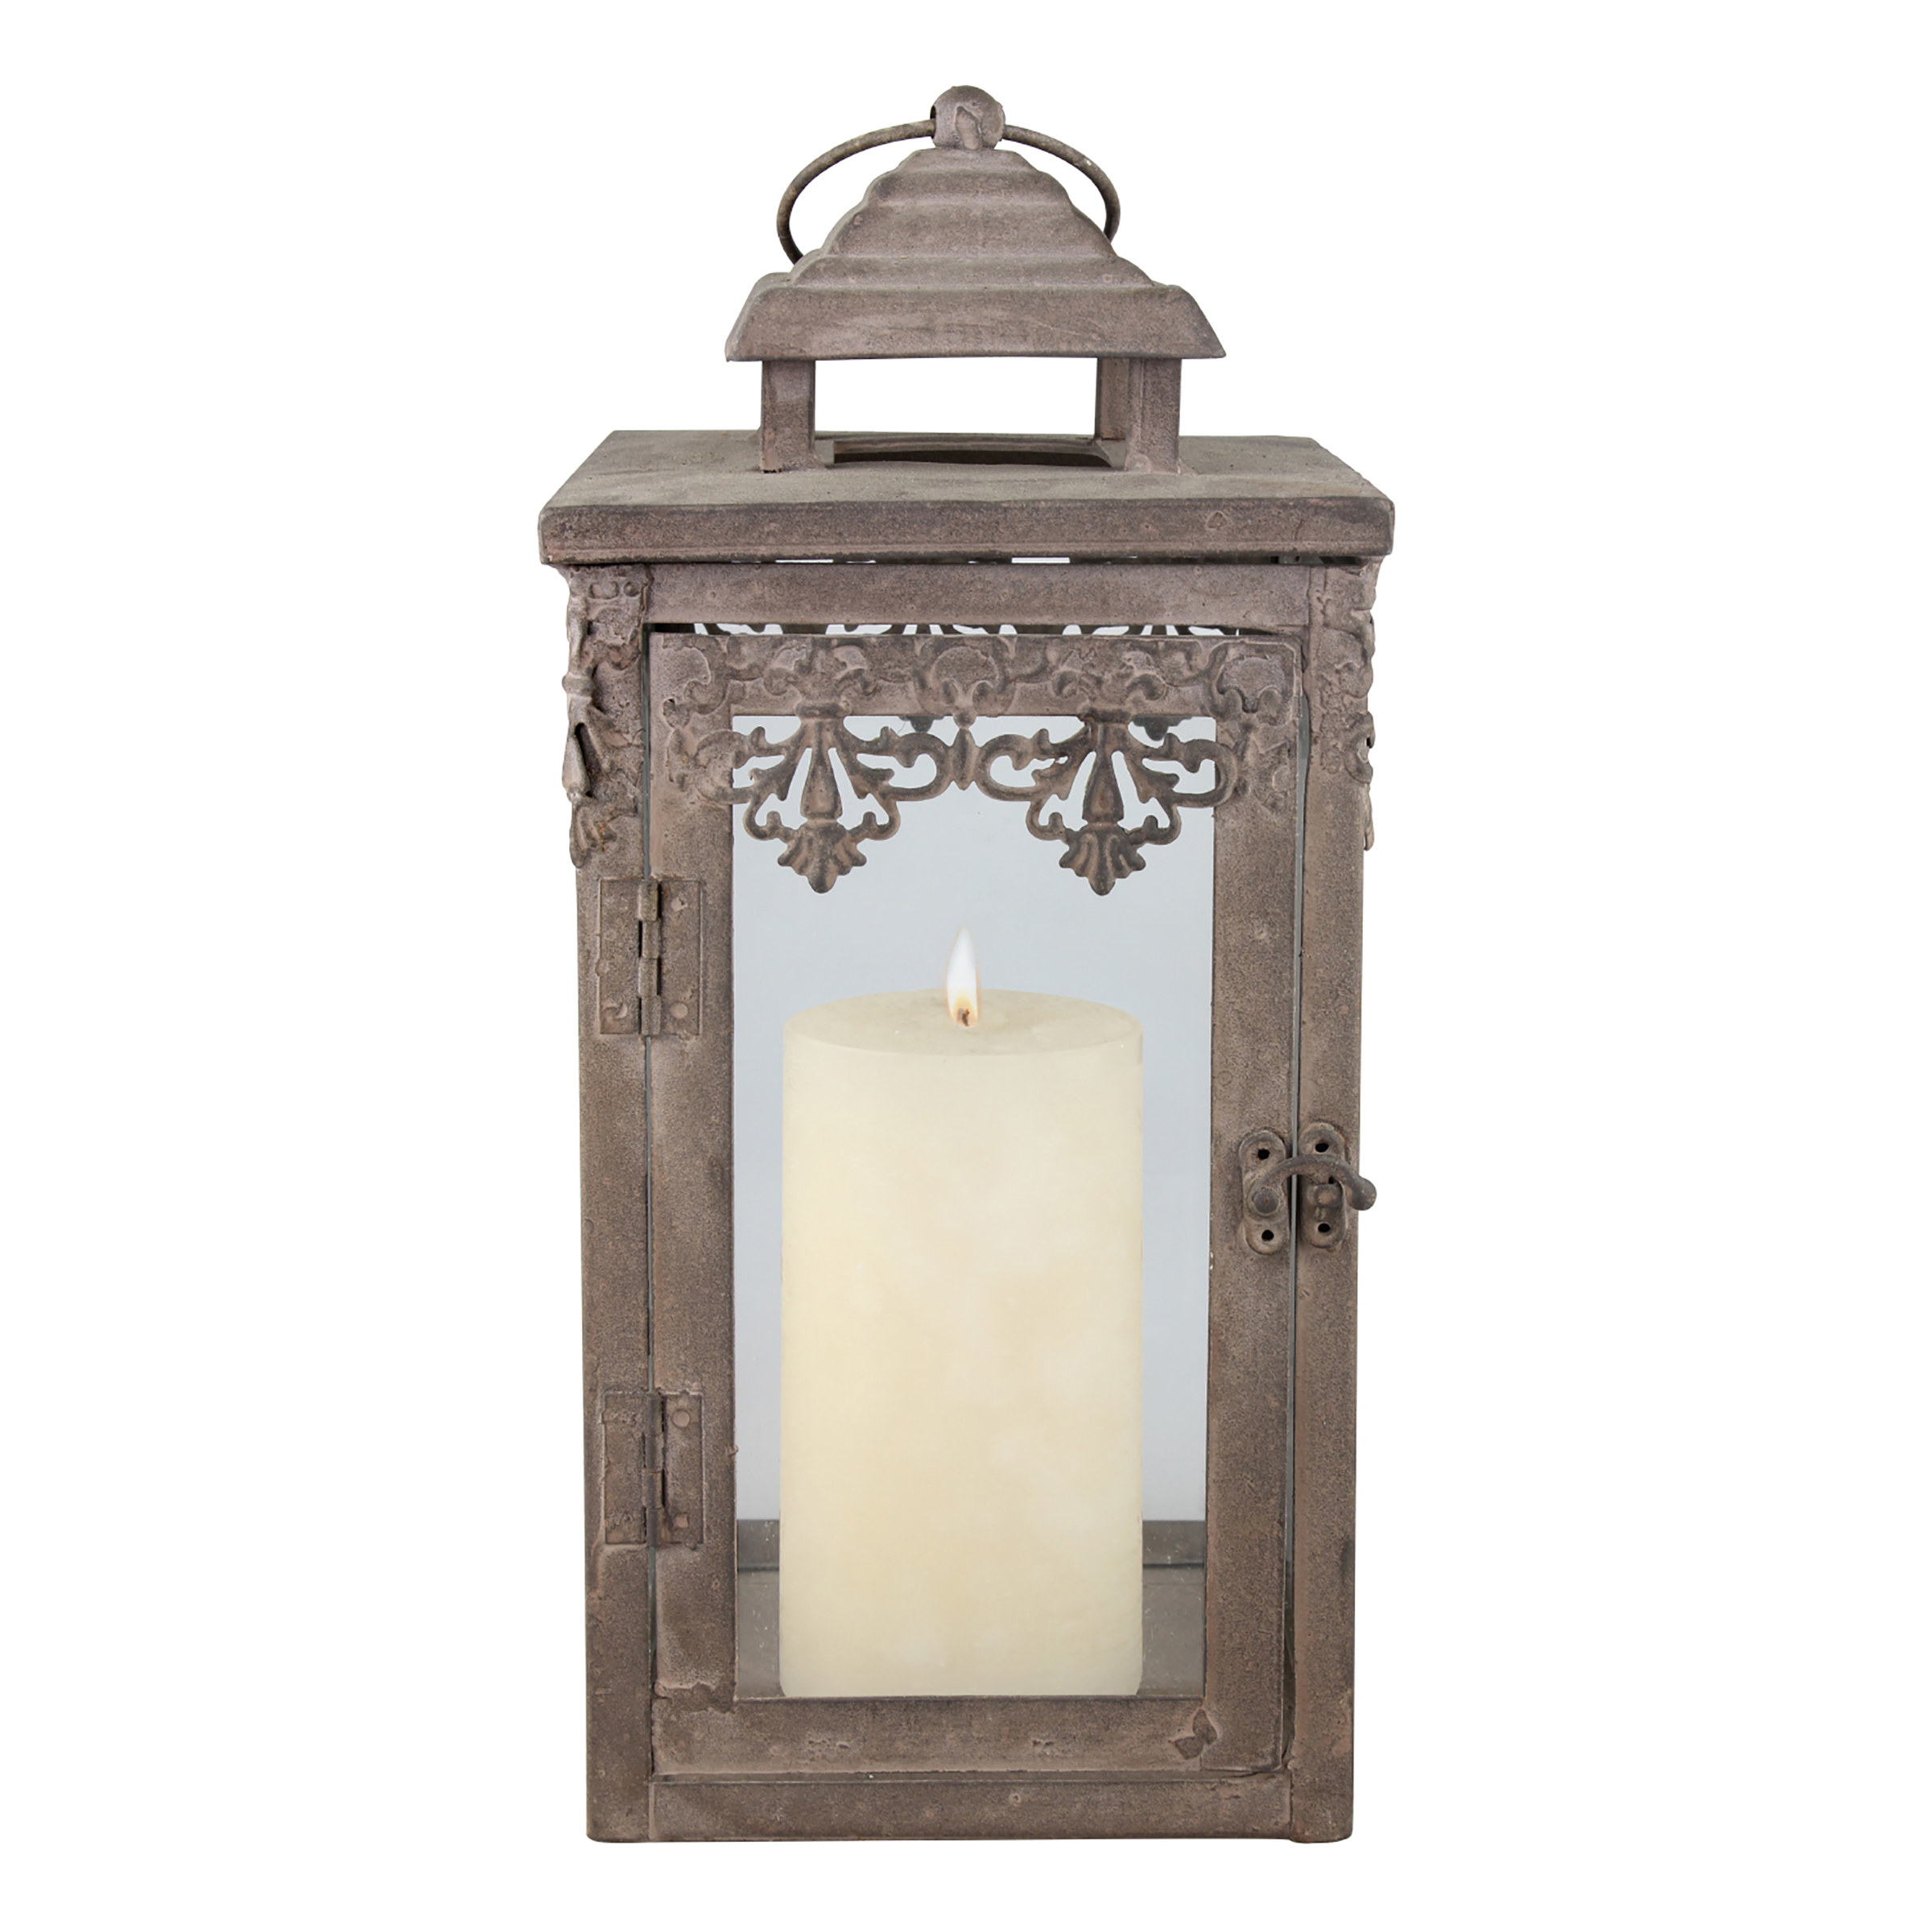 a washed brown metal lantern with a candle inside and small latch door